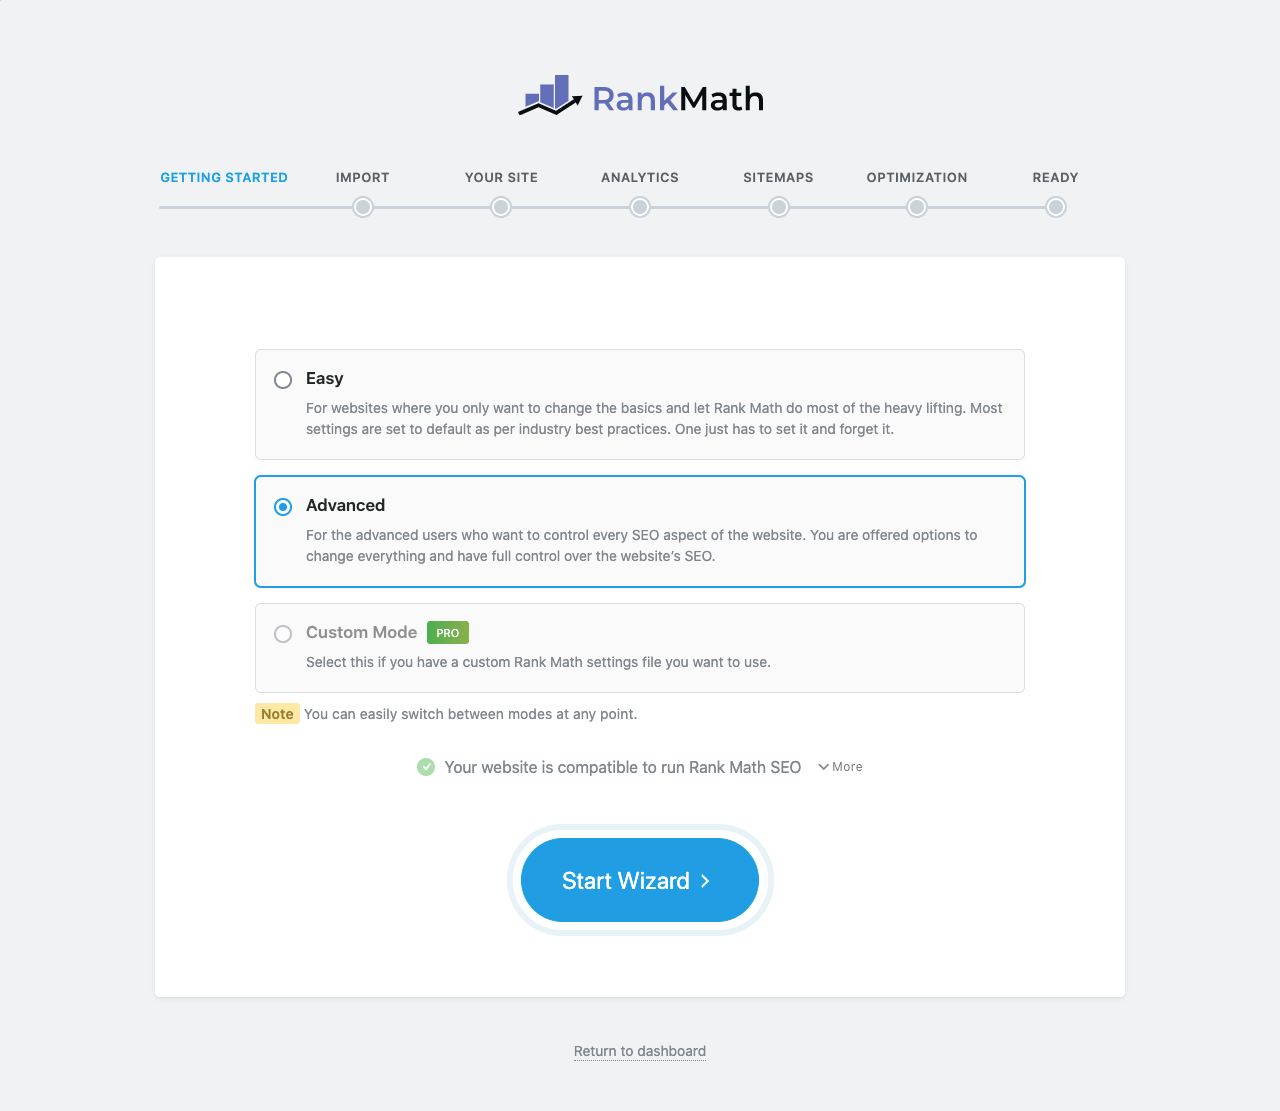 Rank Math Setup Wizard